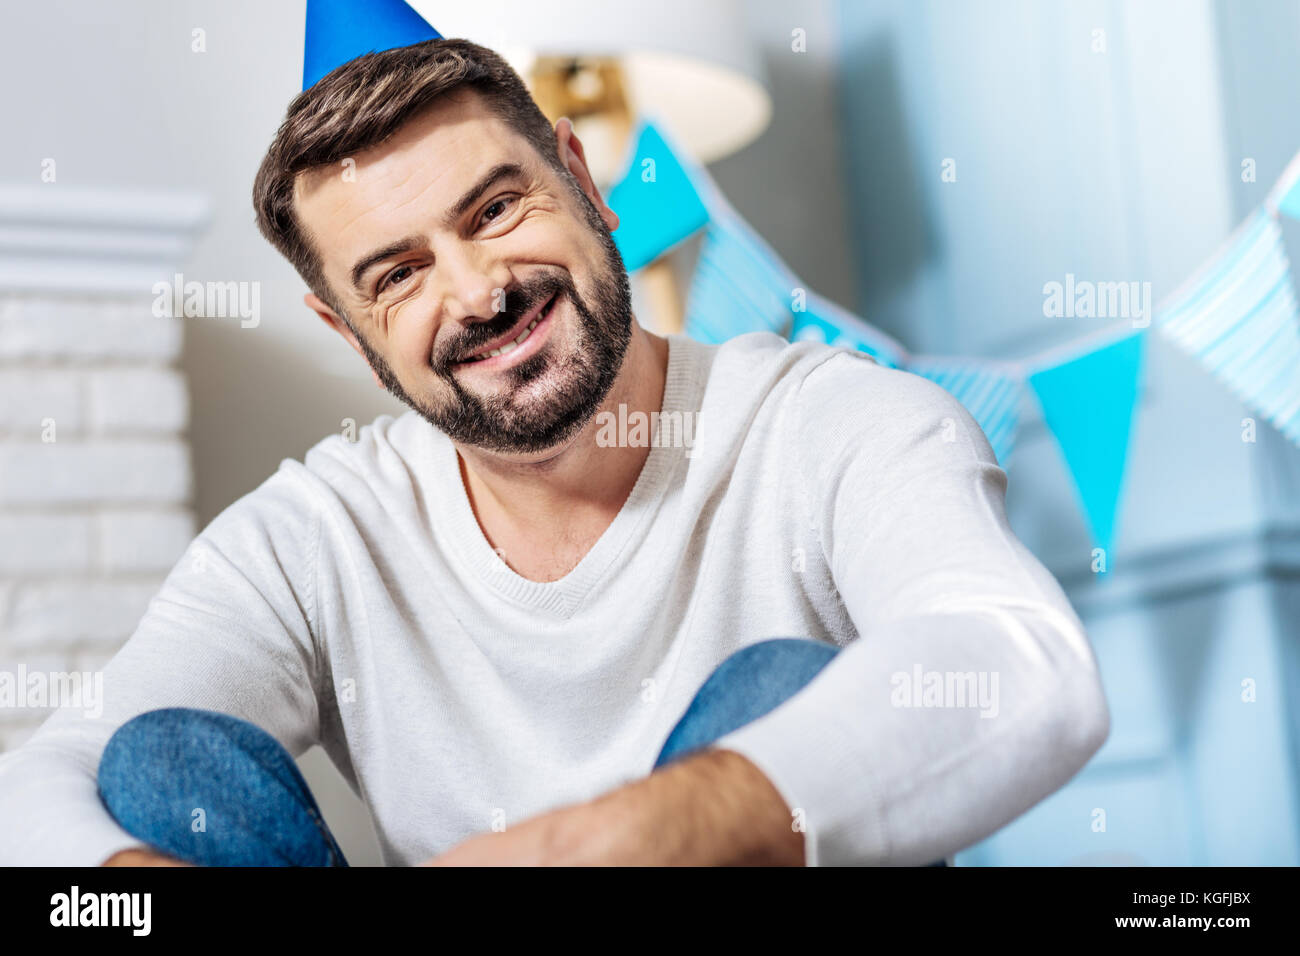 Pleasant bearded man celebrating a party - Stock Image